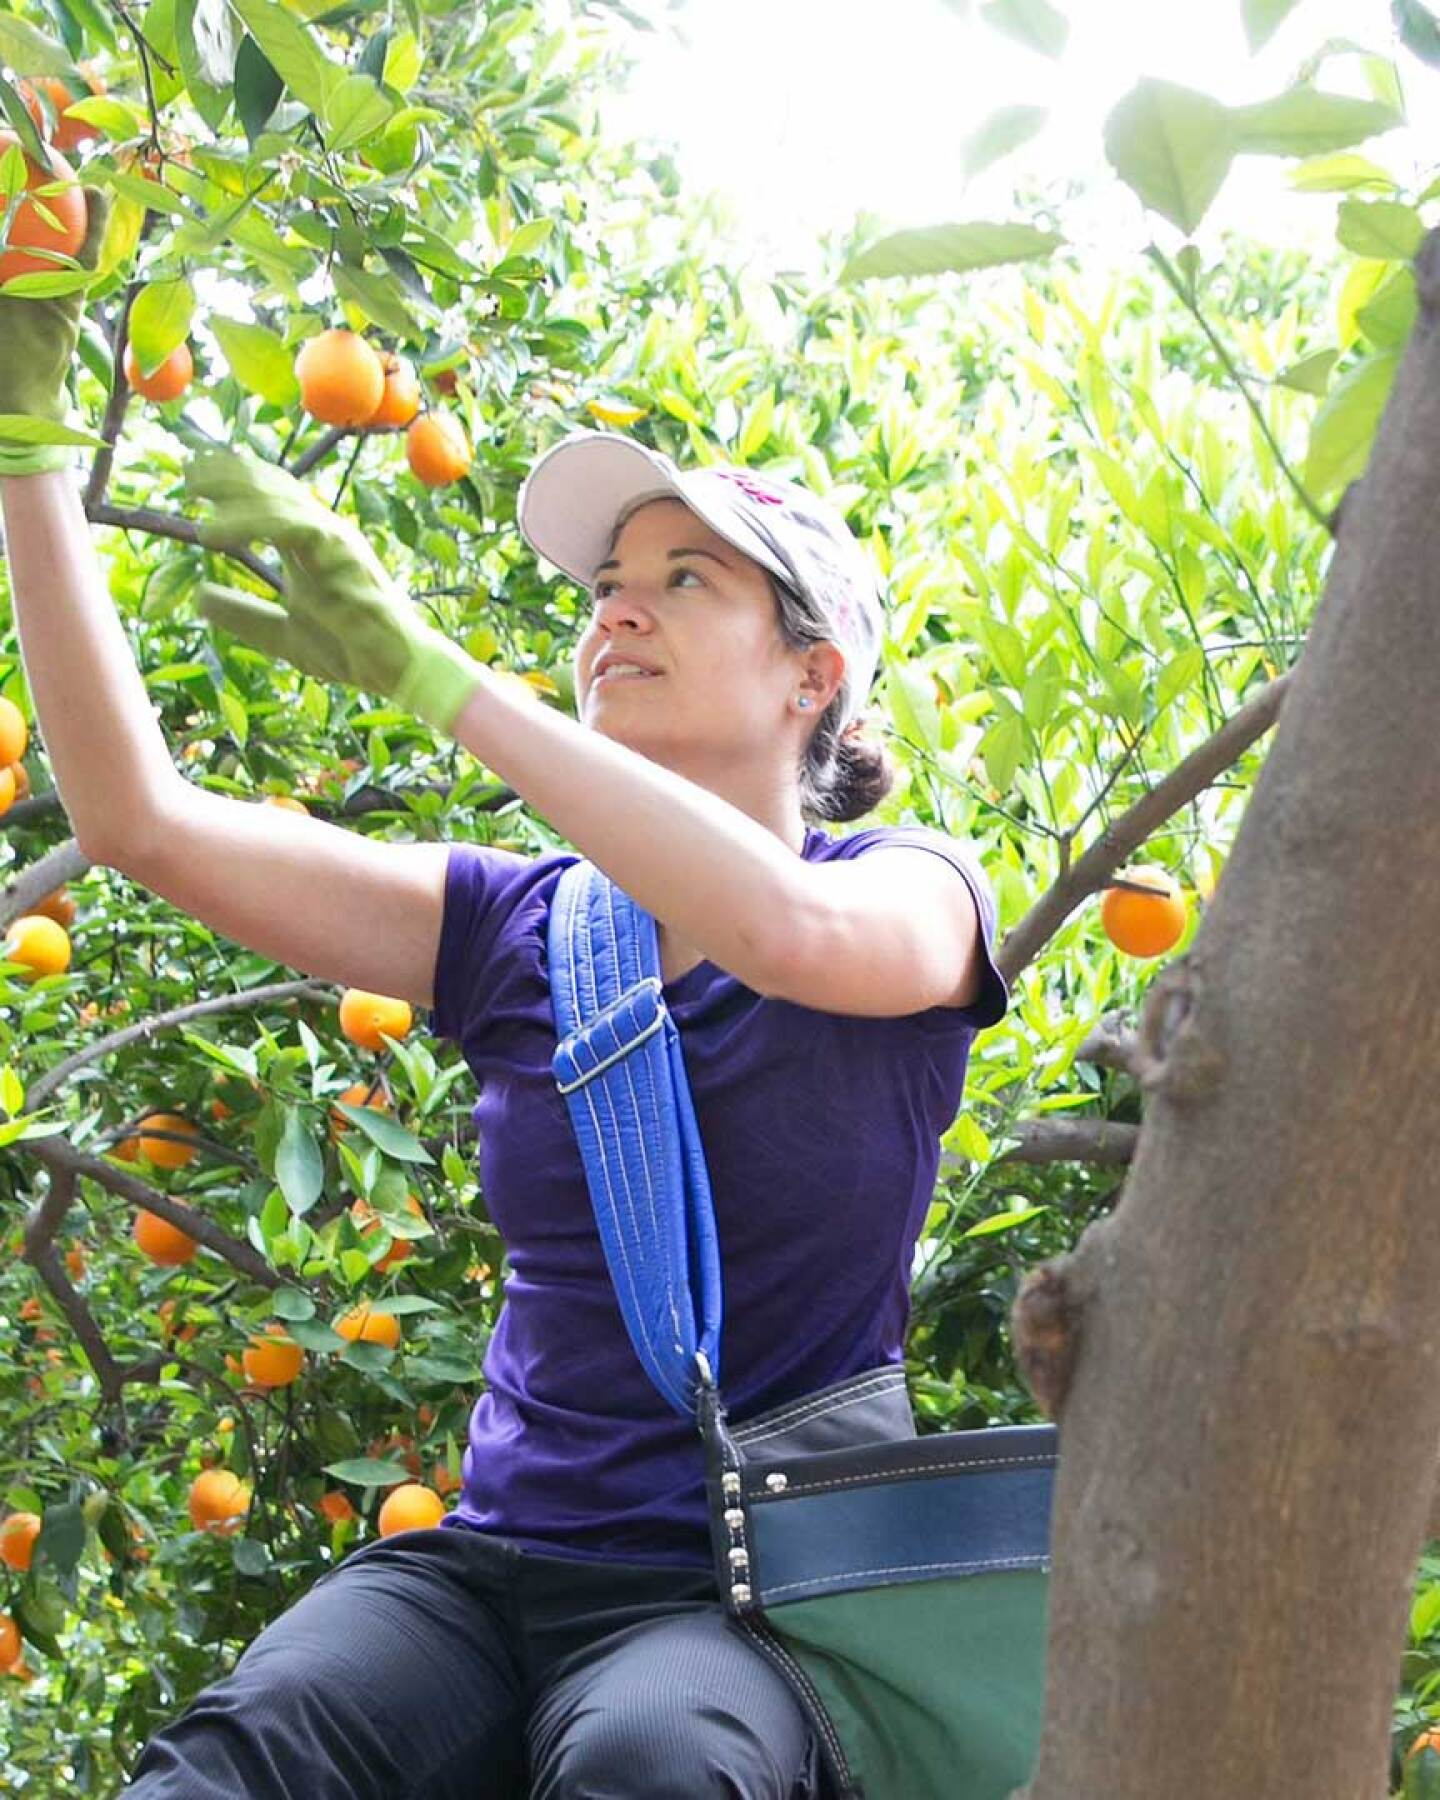 Rather than let the fruit from orange and lemon trees go to waste, the non-profit Food Forward formed in 2009 to gather fruit from trees throughout the region and donates fruit to local food banks. 2014. | Courtesy of Angel City Press